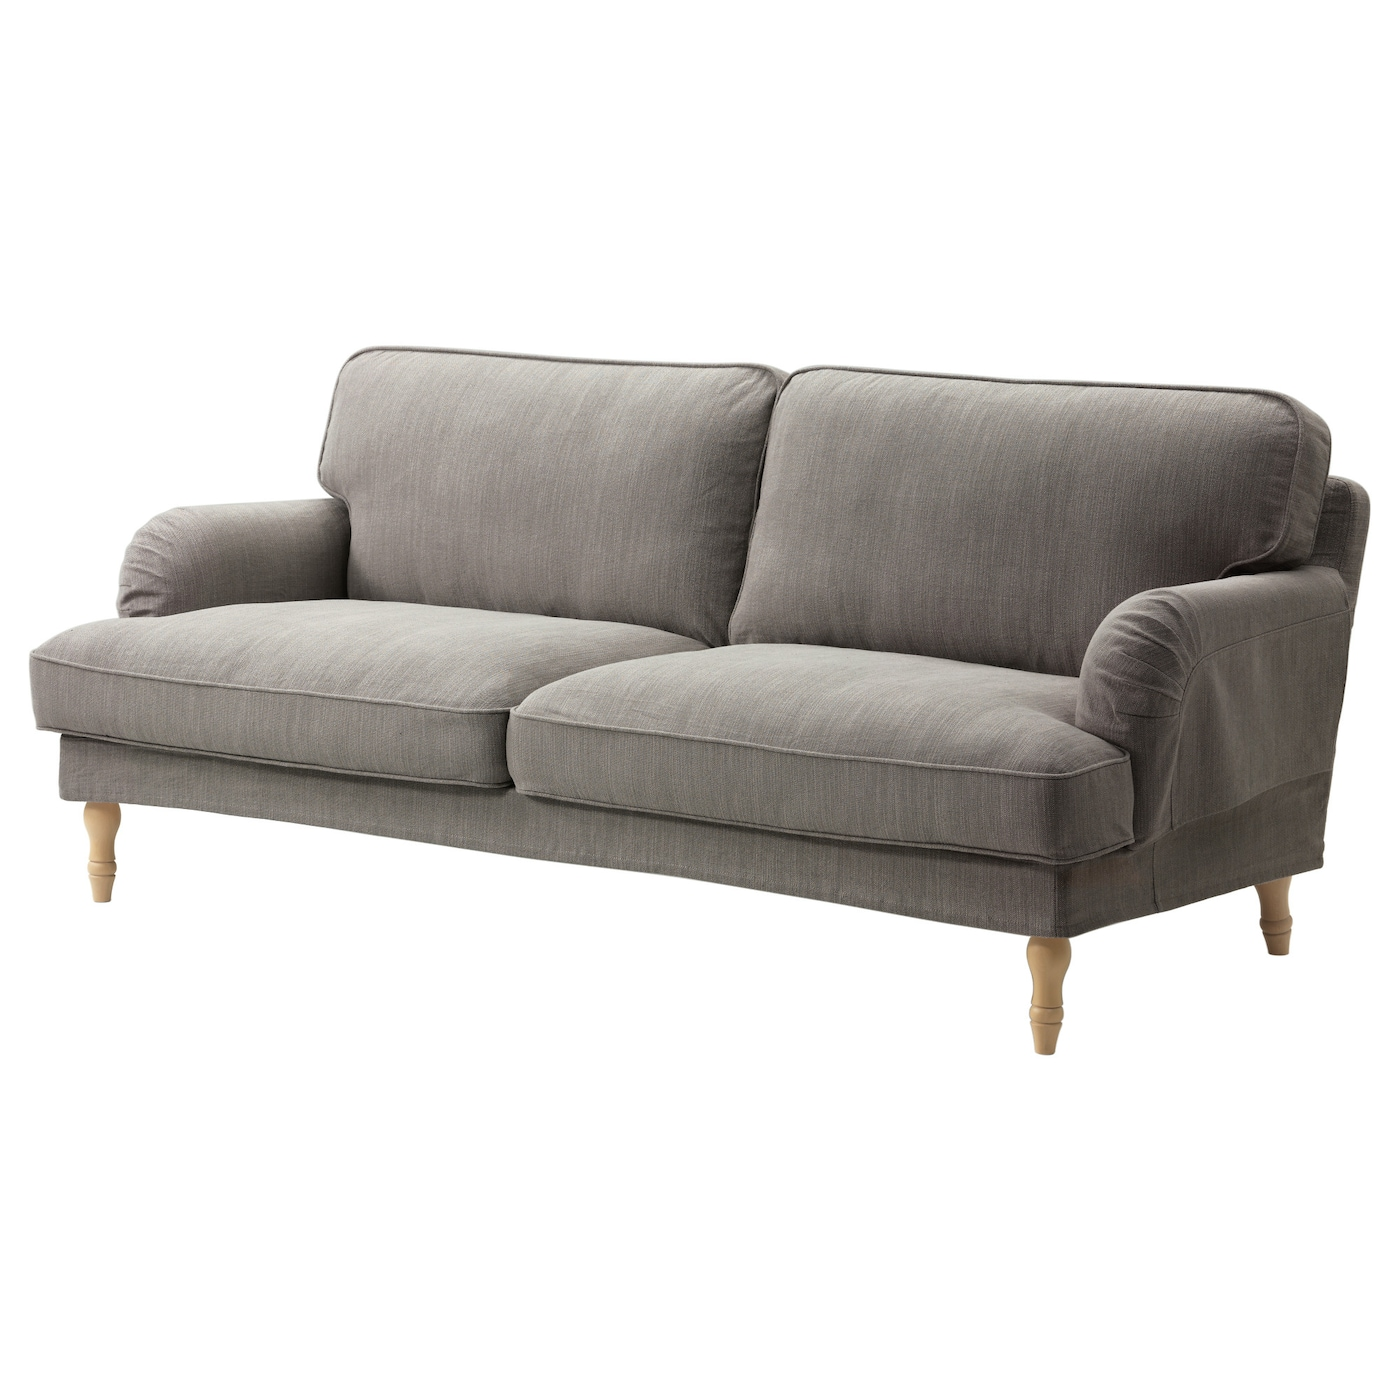 Stocksund three seat sofa nolhaga grey beige light brown for Ikea gray sofa